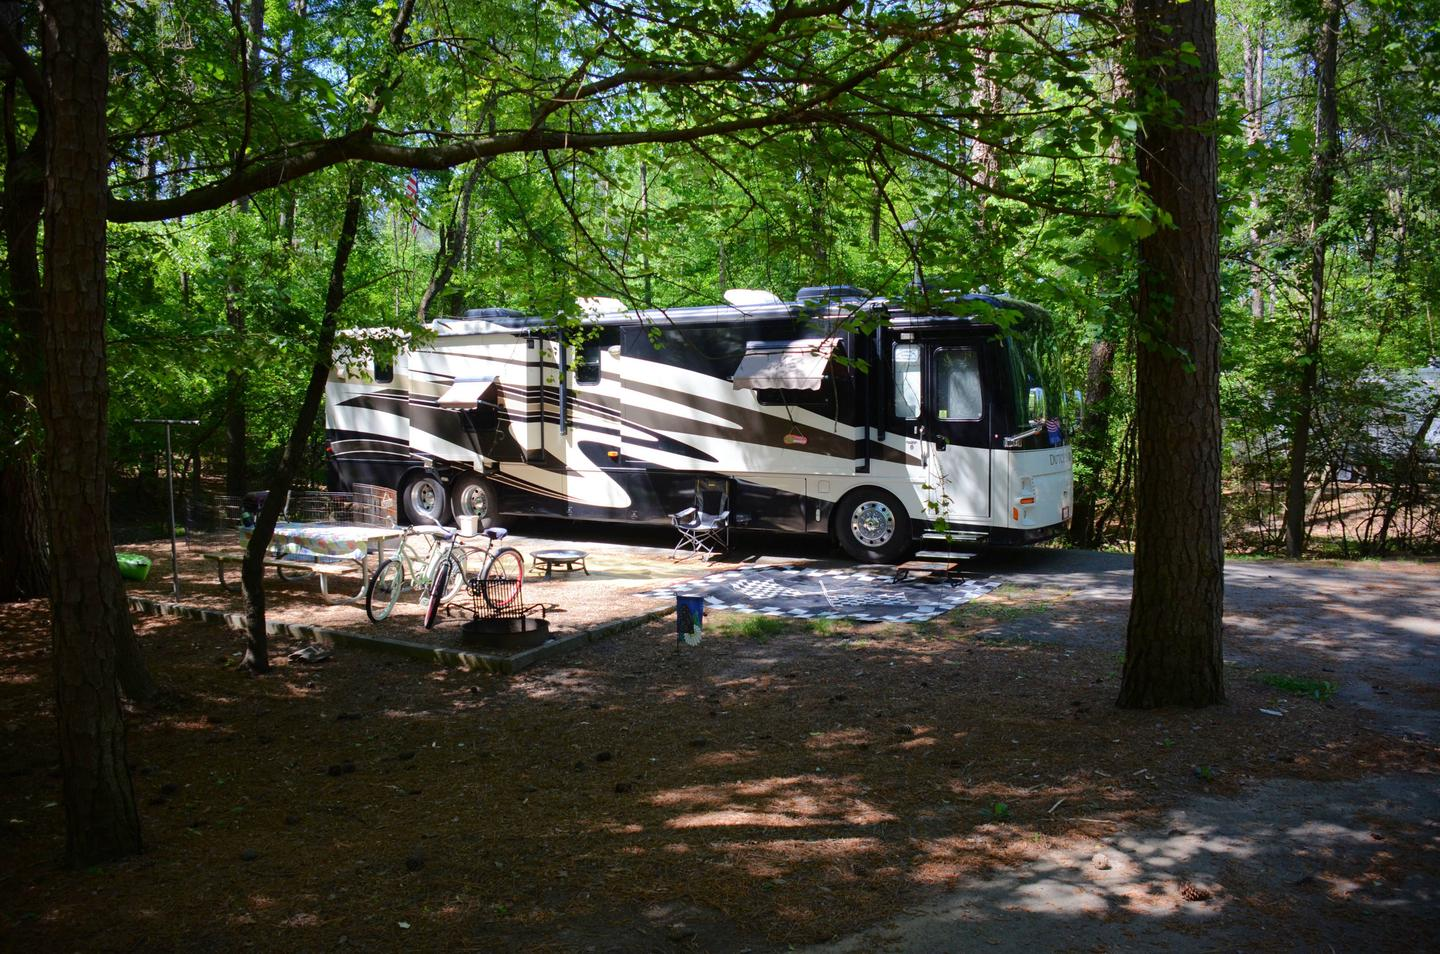 Awning-side clearance, amenities.McKinney Campground, campsite 72.